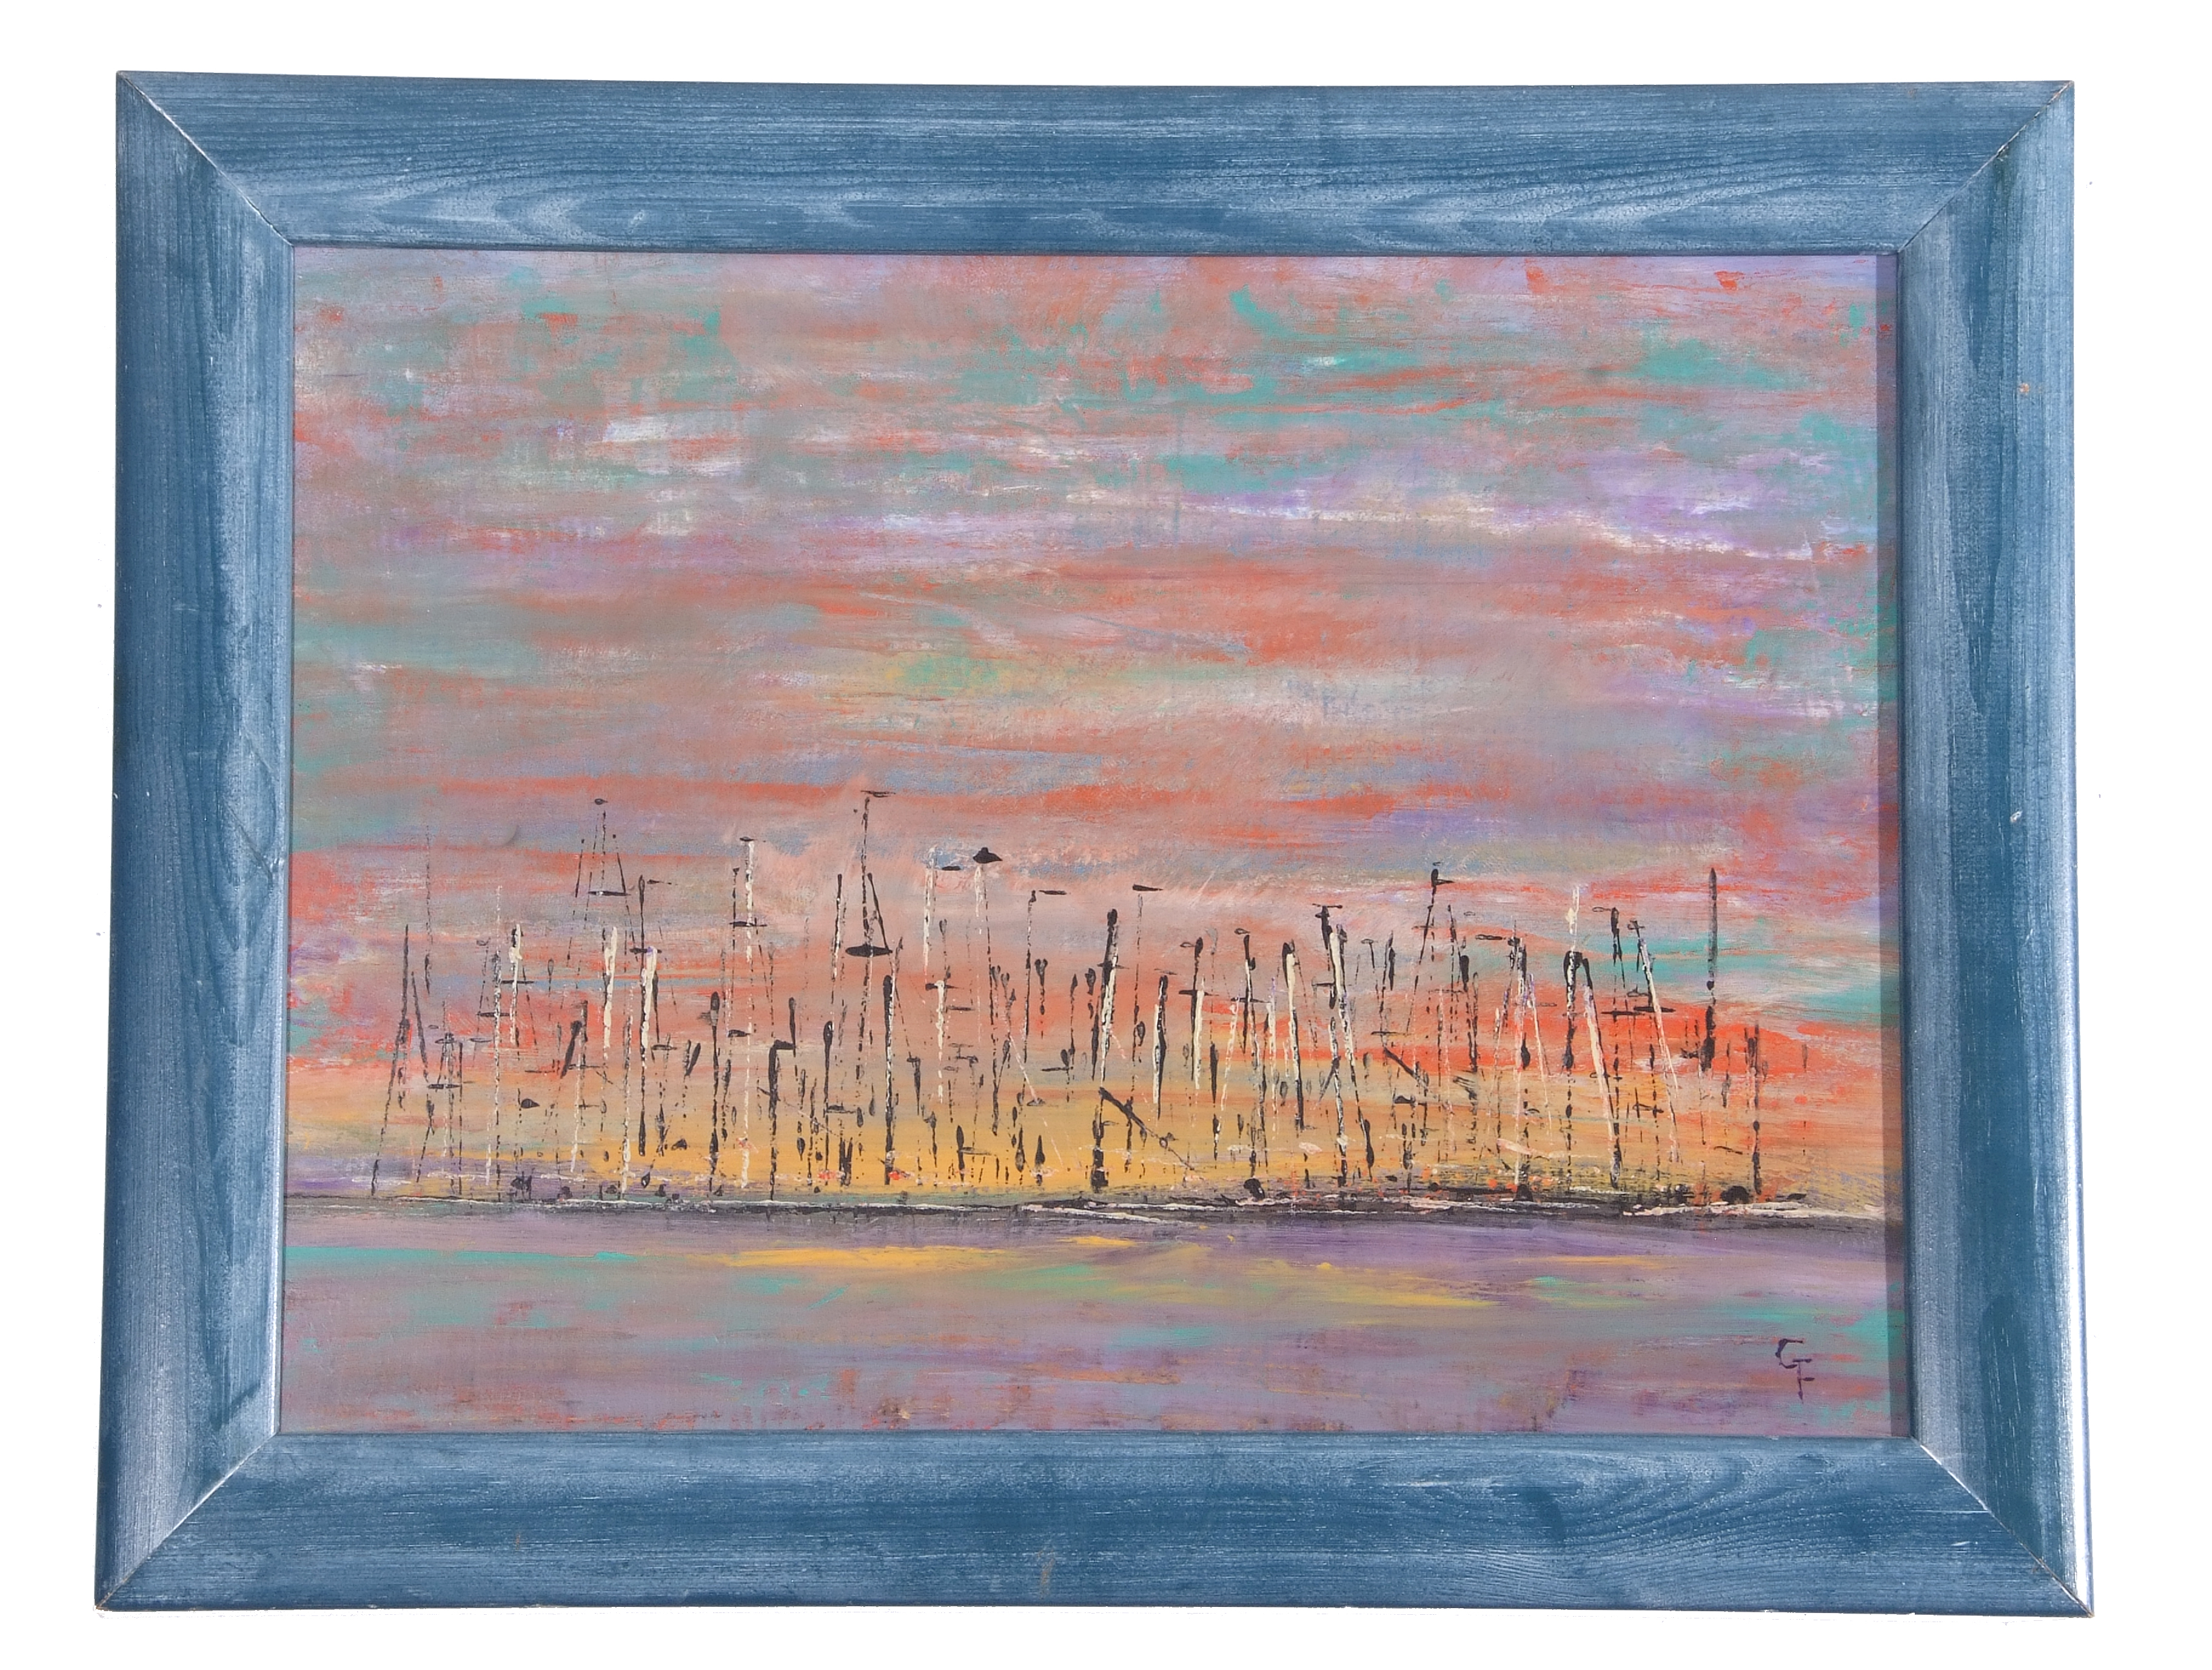 Gloria French, Contemporary, Marina in the Evening, indistinctly signed, dated verso, Oil on canvas